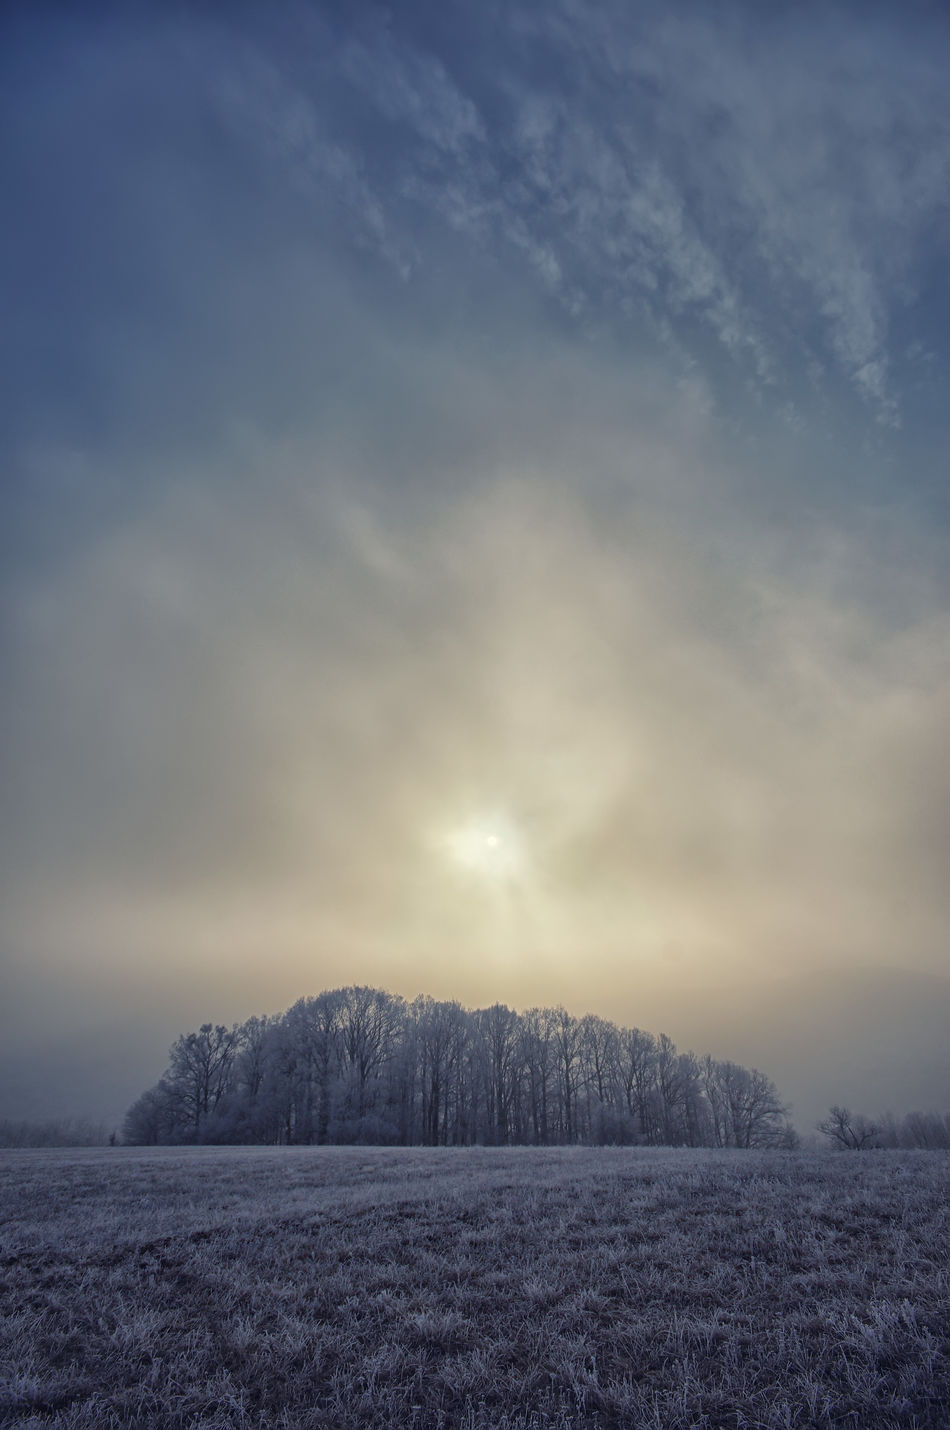 Winter sun above the trees Beauty In Nature Clouds And Sky Cold Temperature Day Freeze Frost Landscape Nature No People Outdoors Scenics Sky Sky And Clouds Snow Sun Tree Winter Winter Wintertime ⛄